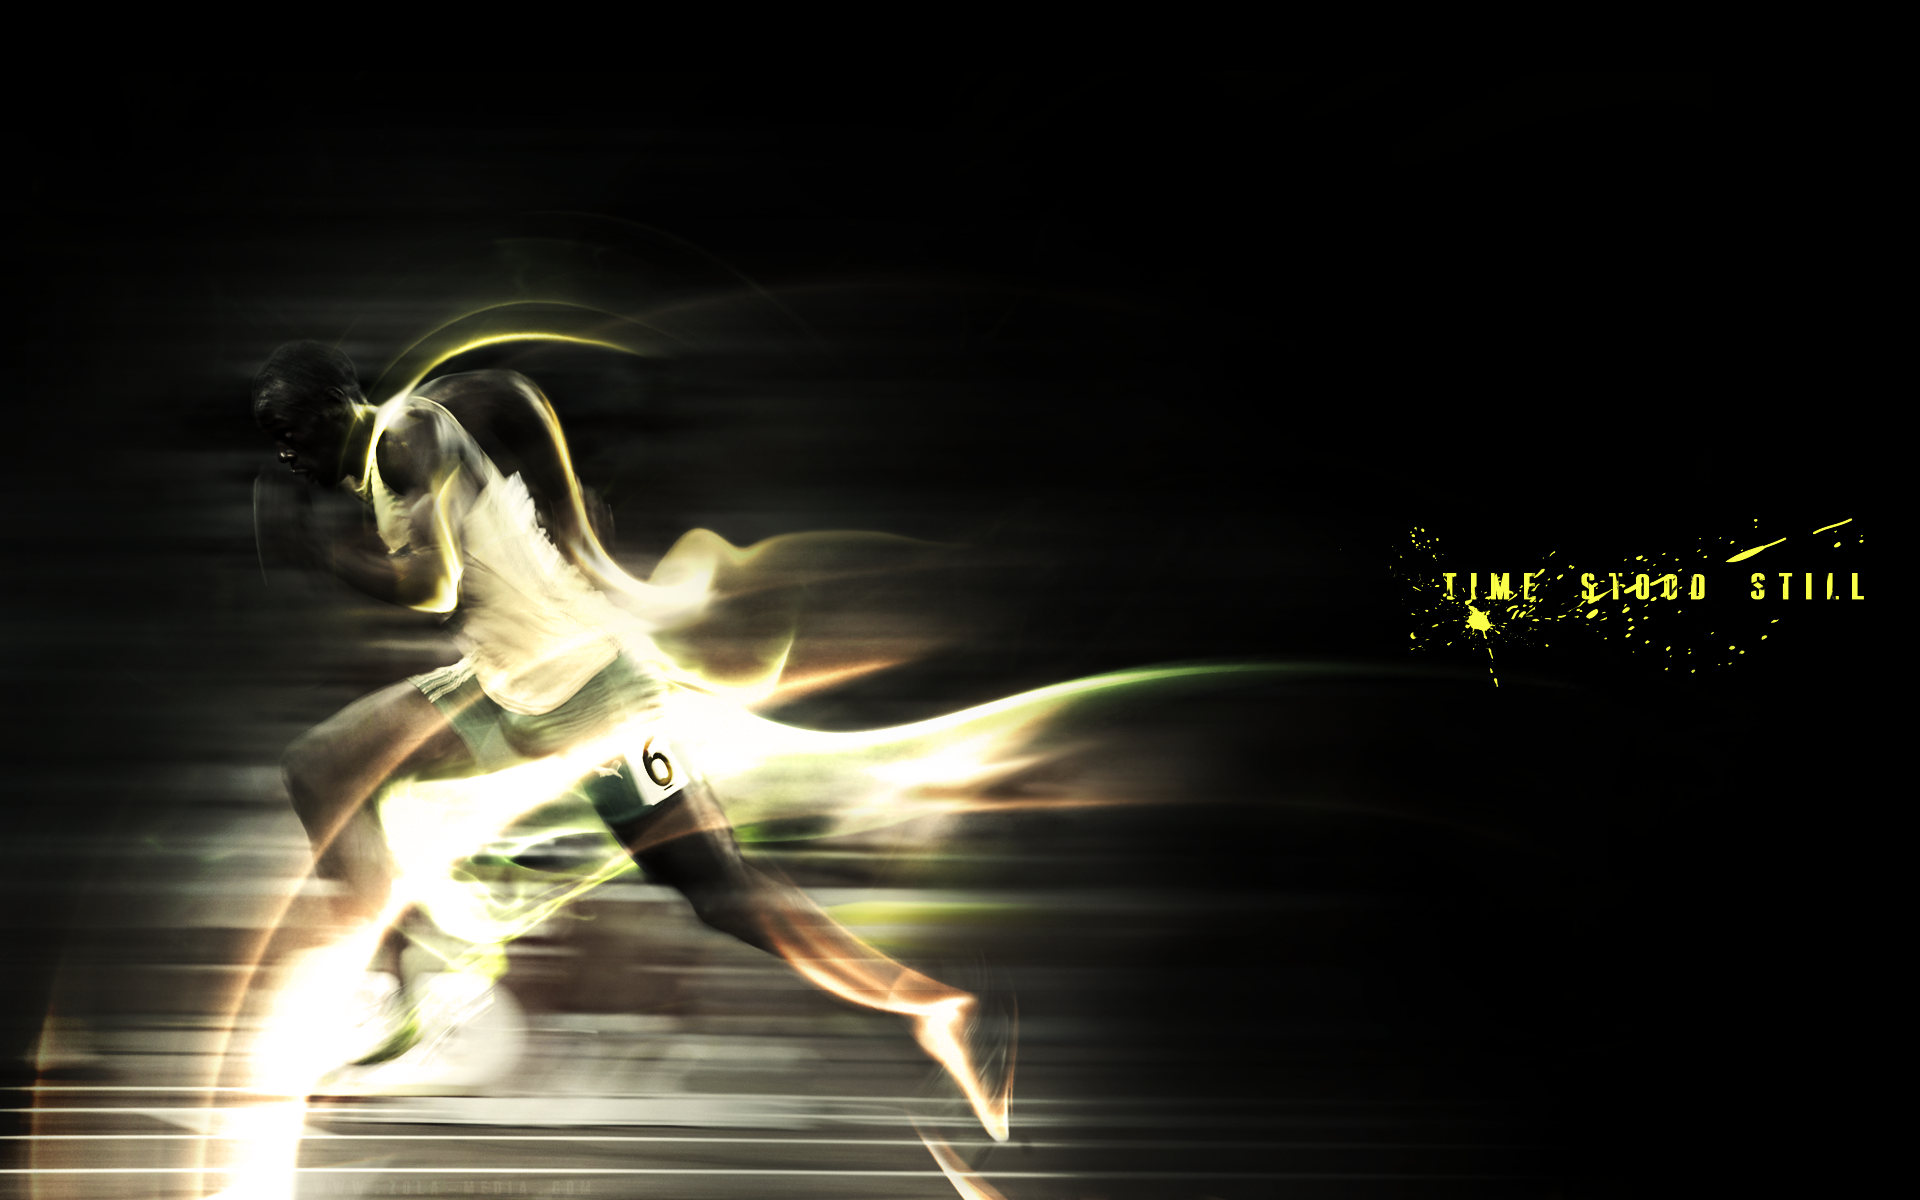 USAIN BOLT WALLPAPERS FREE Wallpapers Background images 1920x1200